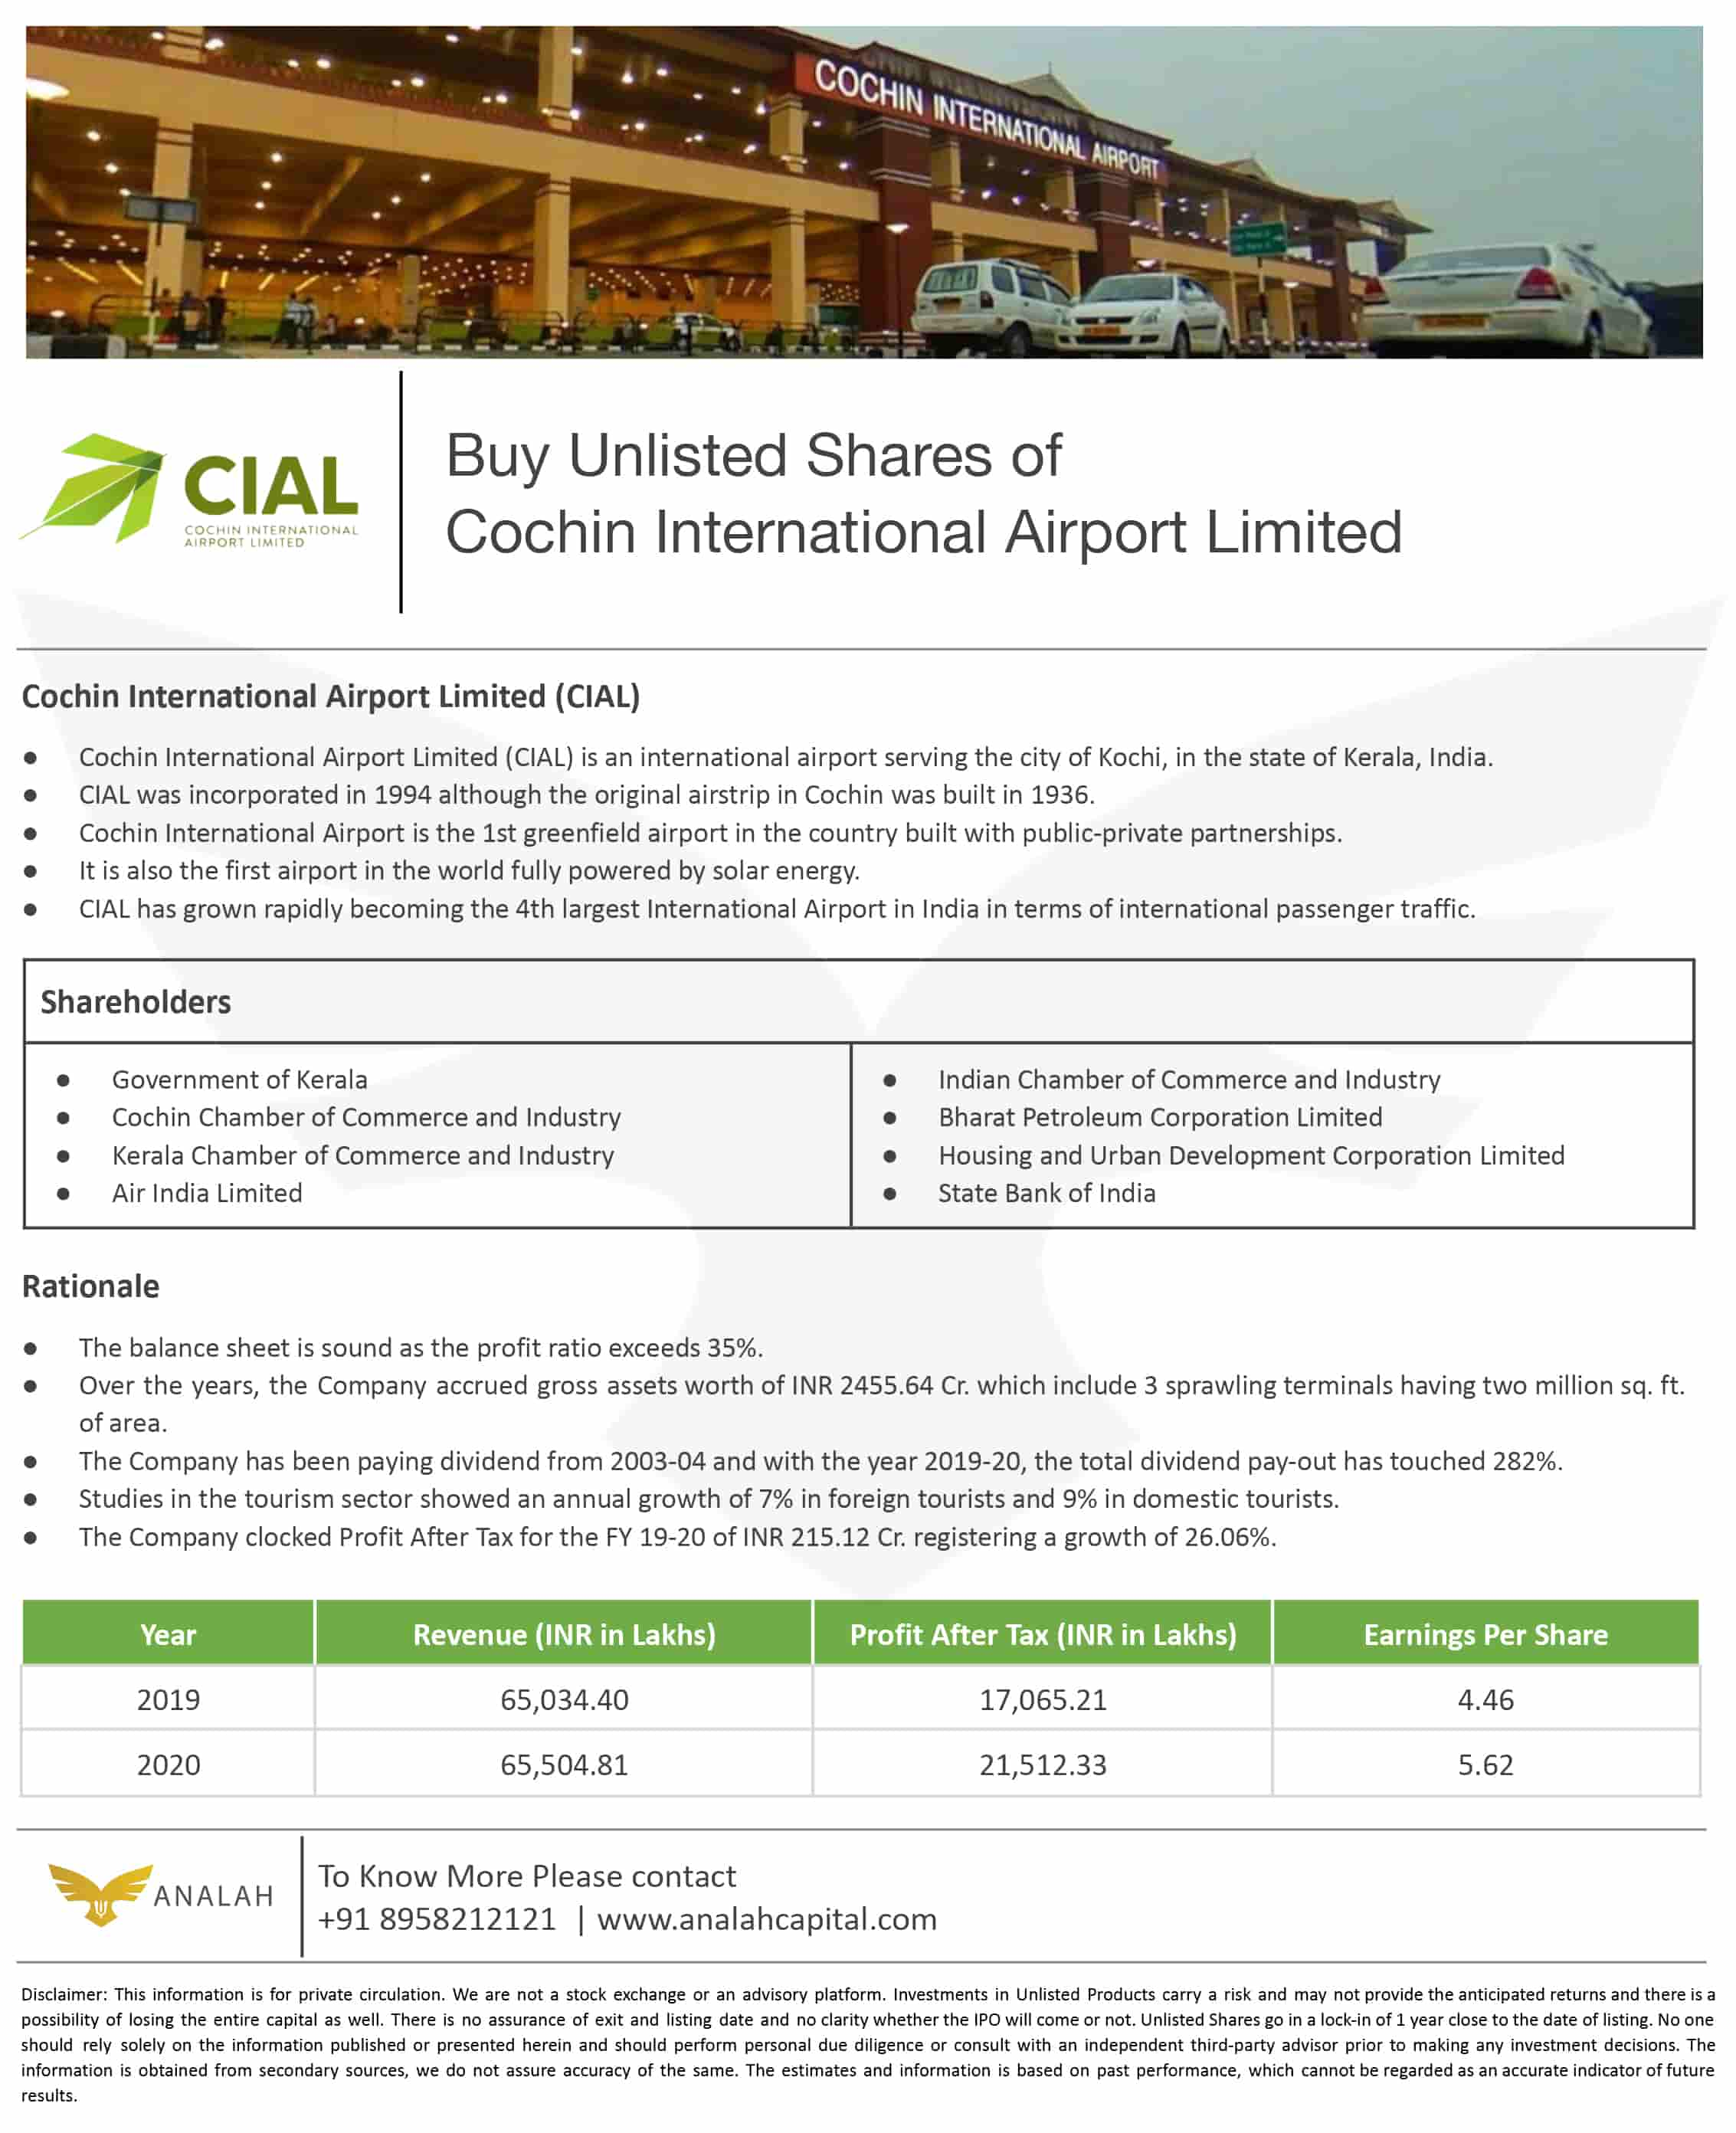 Cochin International Airport Unlisted Shares